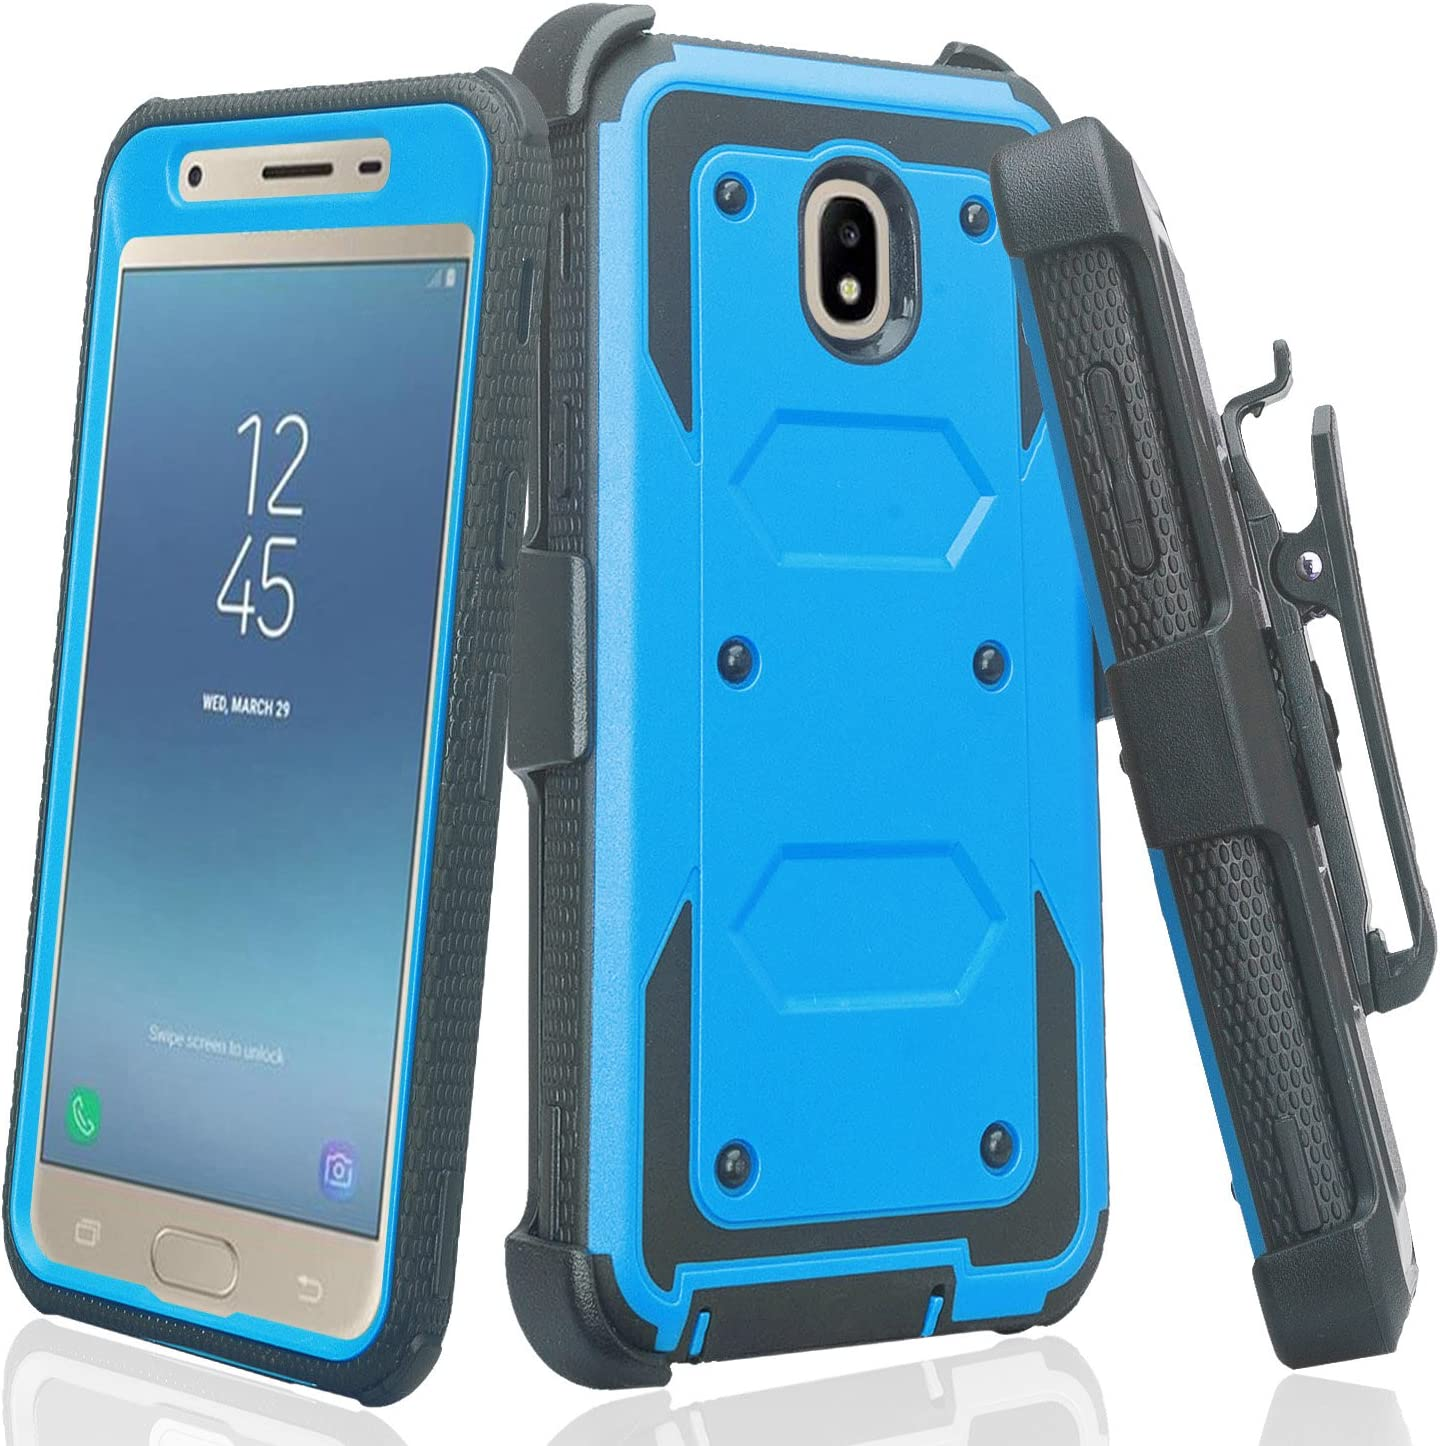 Galaxy J7 Star Case,J7 Crown Case,J7v 2nd Gen,J7 2018,J7 Refine Case Belt Clip Holster Kickstand Shock Proof [Built in Screen Protector] Phone Case Compatible for Samsung Galaxy J7 Crown Cases - Blue